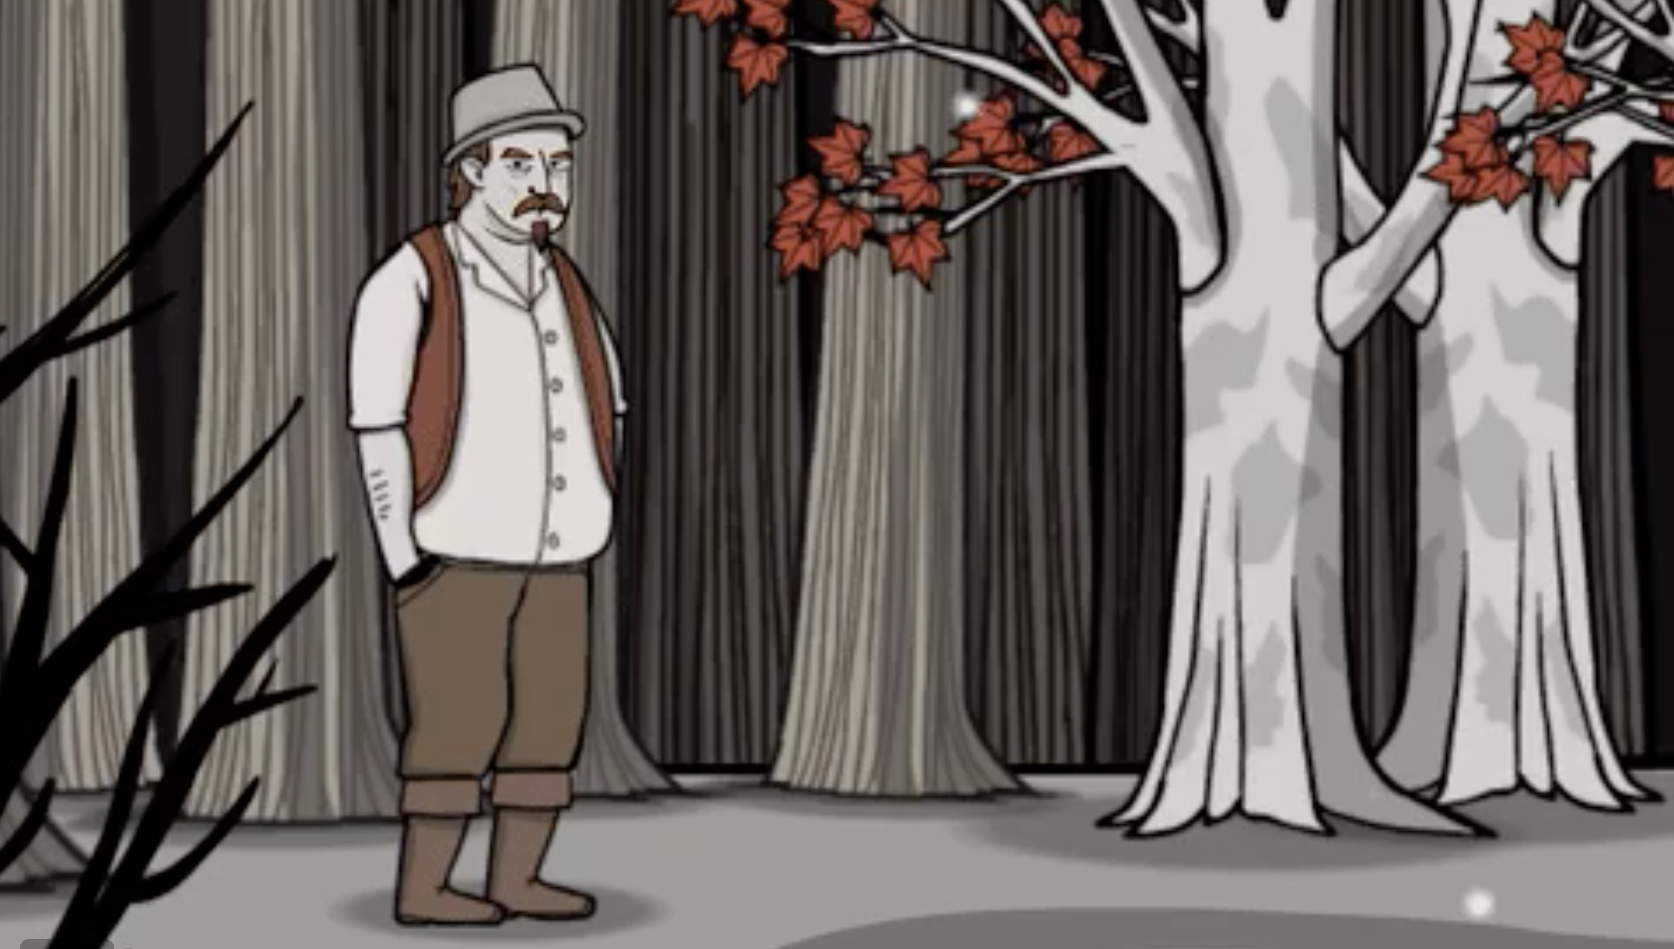 'Rusty Lake Paradise' Is the Next Game From the Fantastic Developer of 'Cube Escape' Series